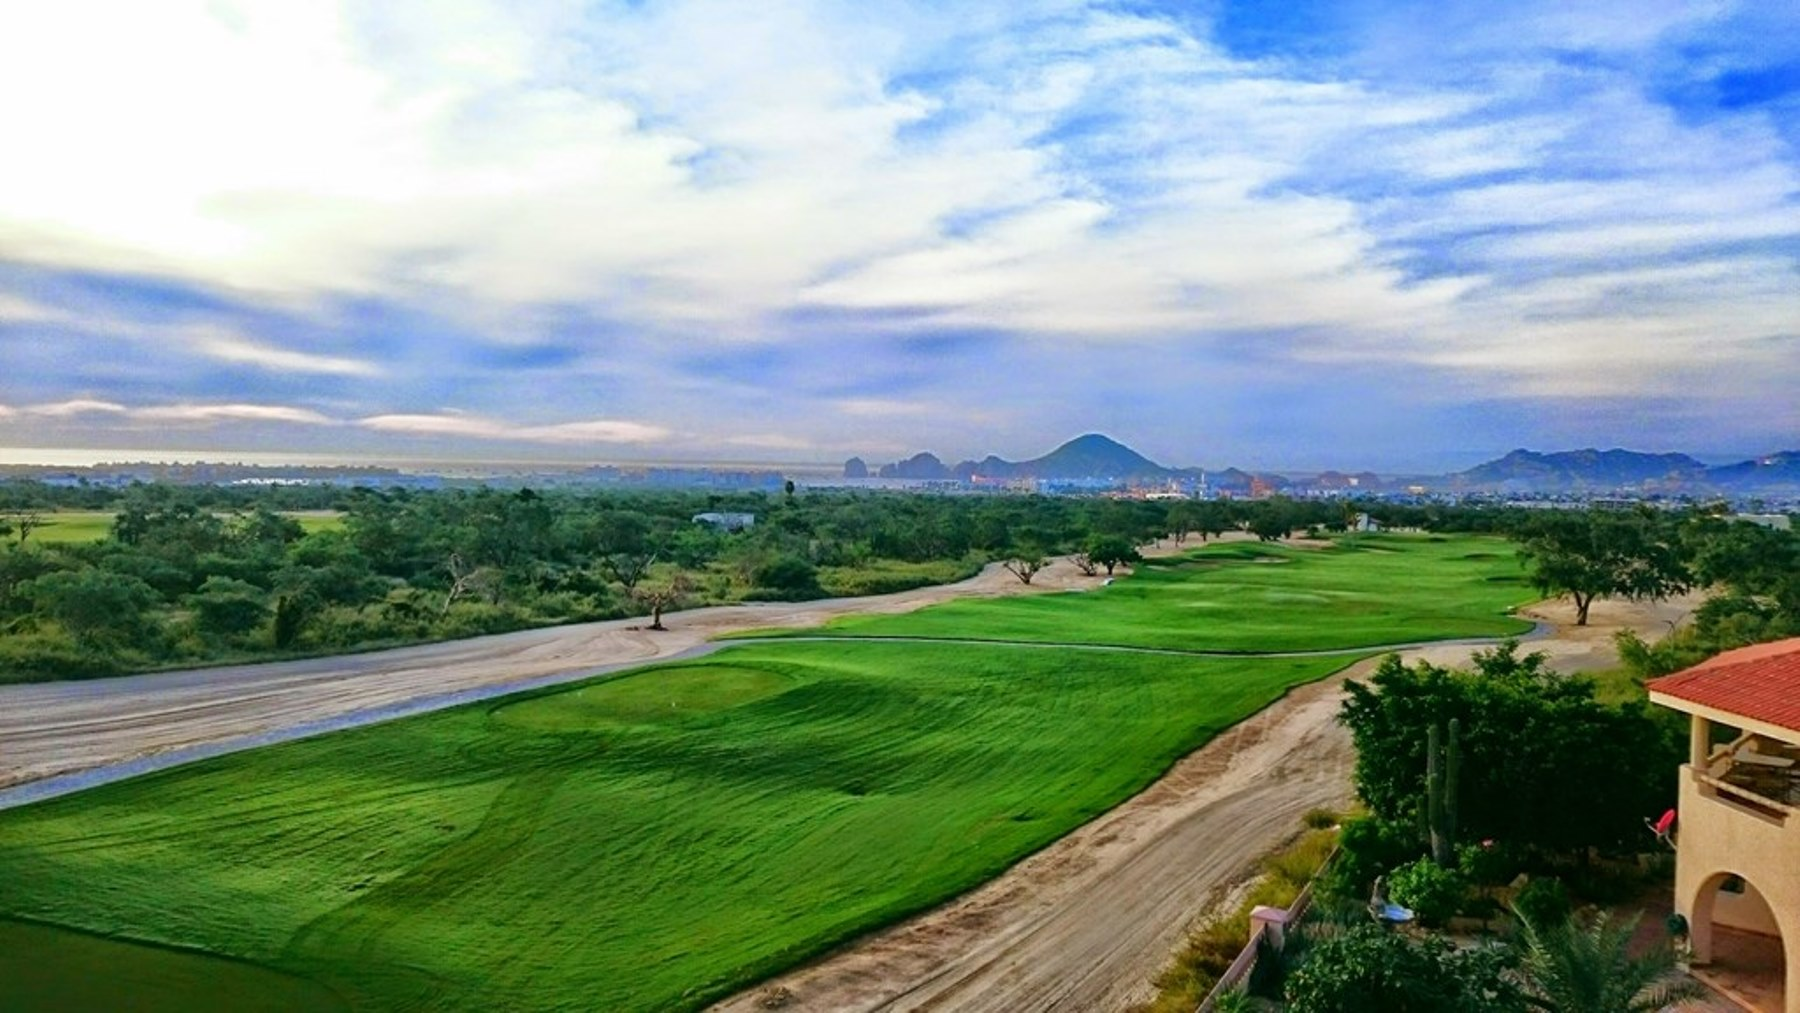 Land for Sale at Lote 162 Country Club Other Baja California Sur, Mexico